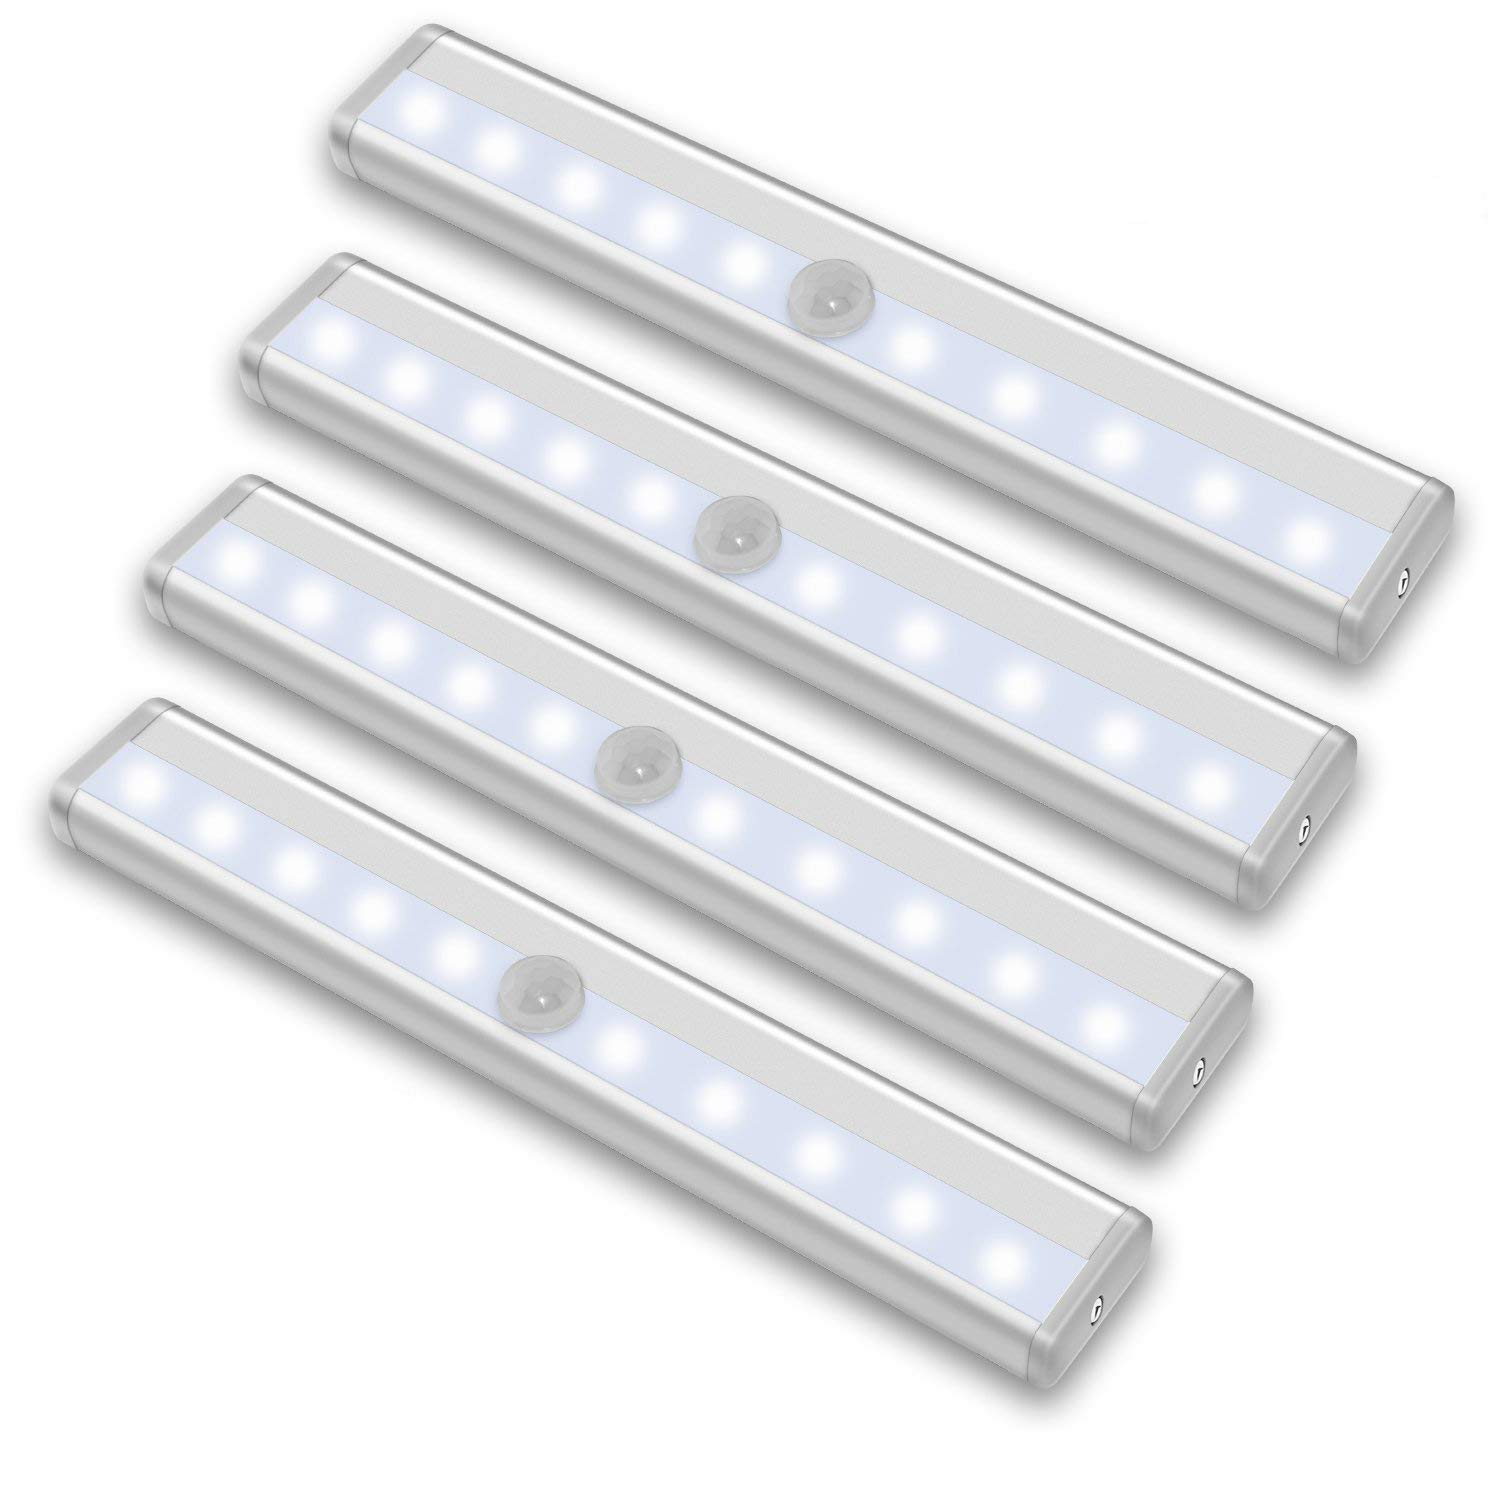 Rayhome 10-LED Motion Sensor Closet Light,Cordless Under Cabinet Lightening,DIY Stick-on Anywhere Activated Light Bar with Magnetic Strip Battery-Powered Super Bright White Night Lights (10Led4Pack)